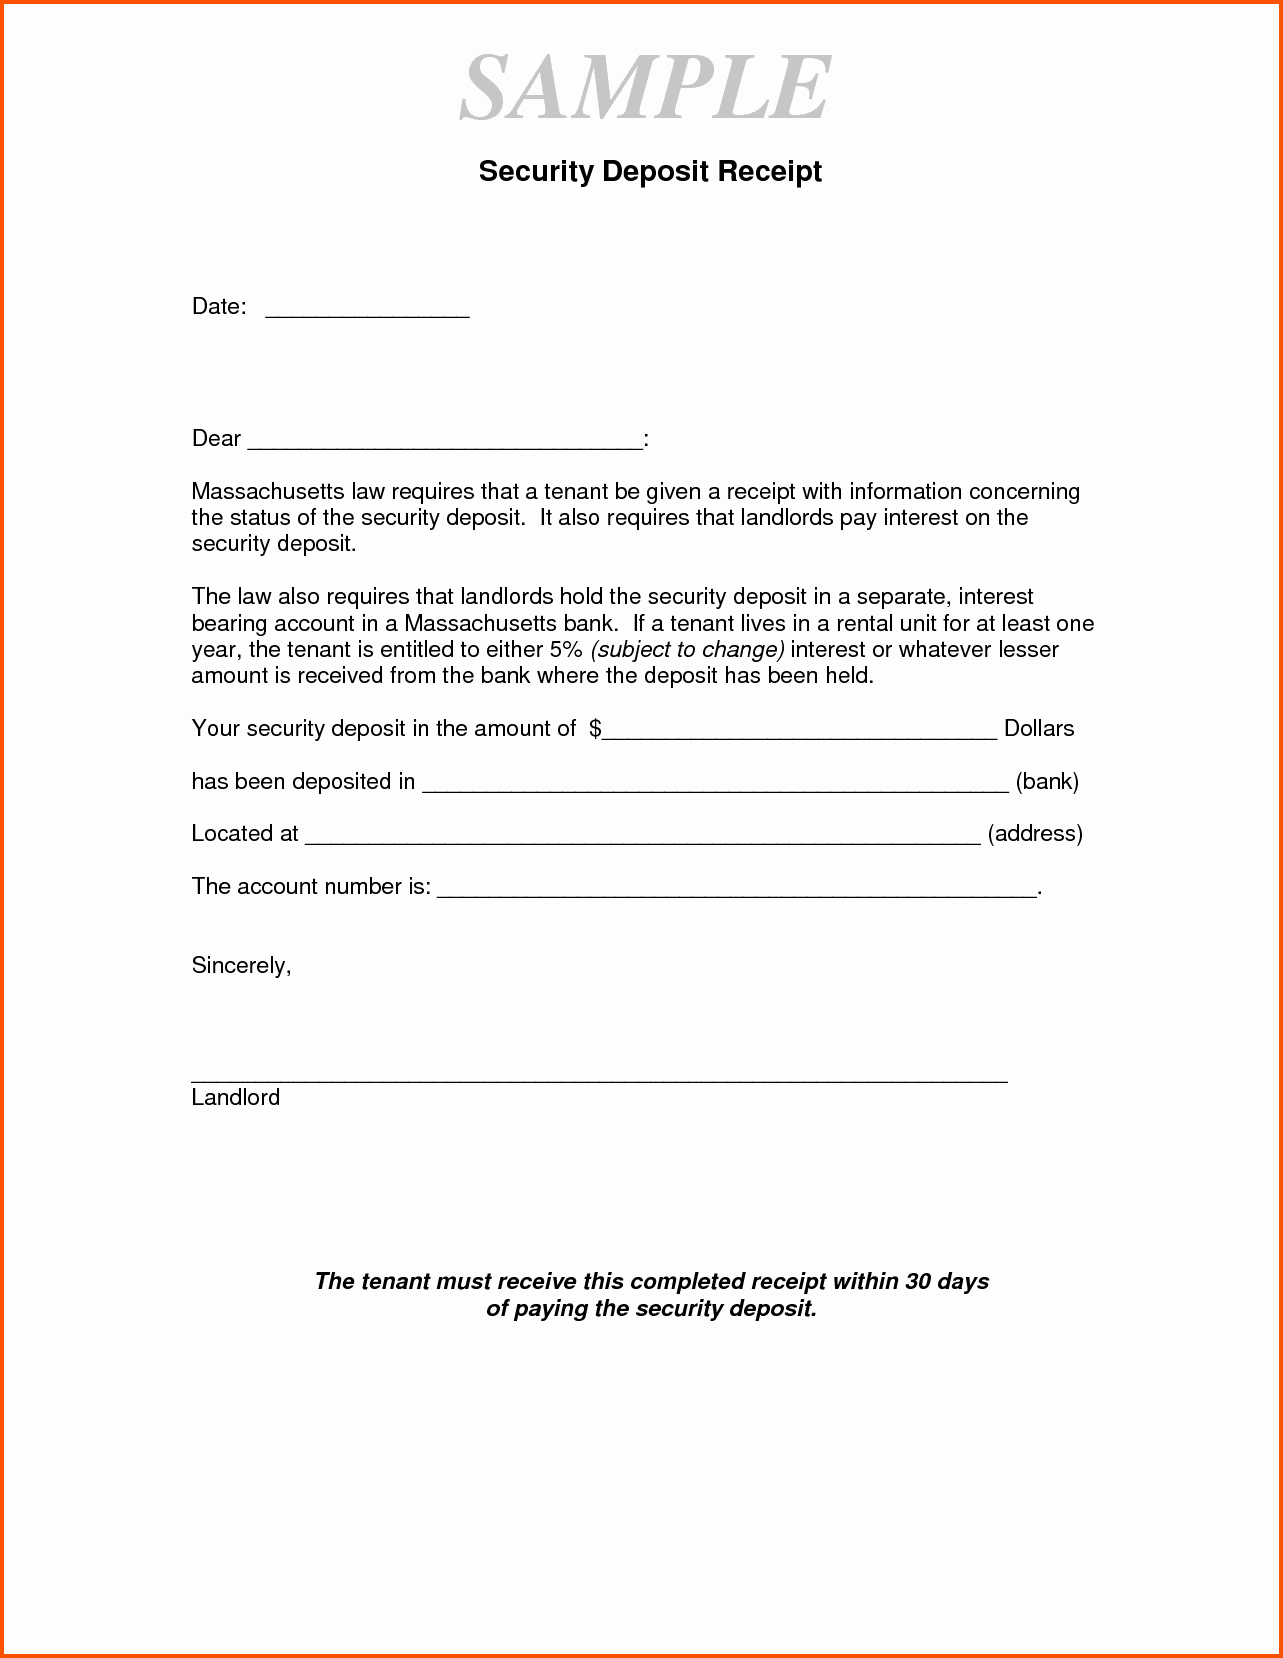 Non Refundable Deposit form Template Lovely 15 Security Deposit Receipt